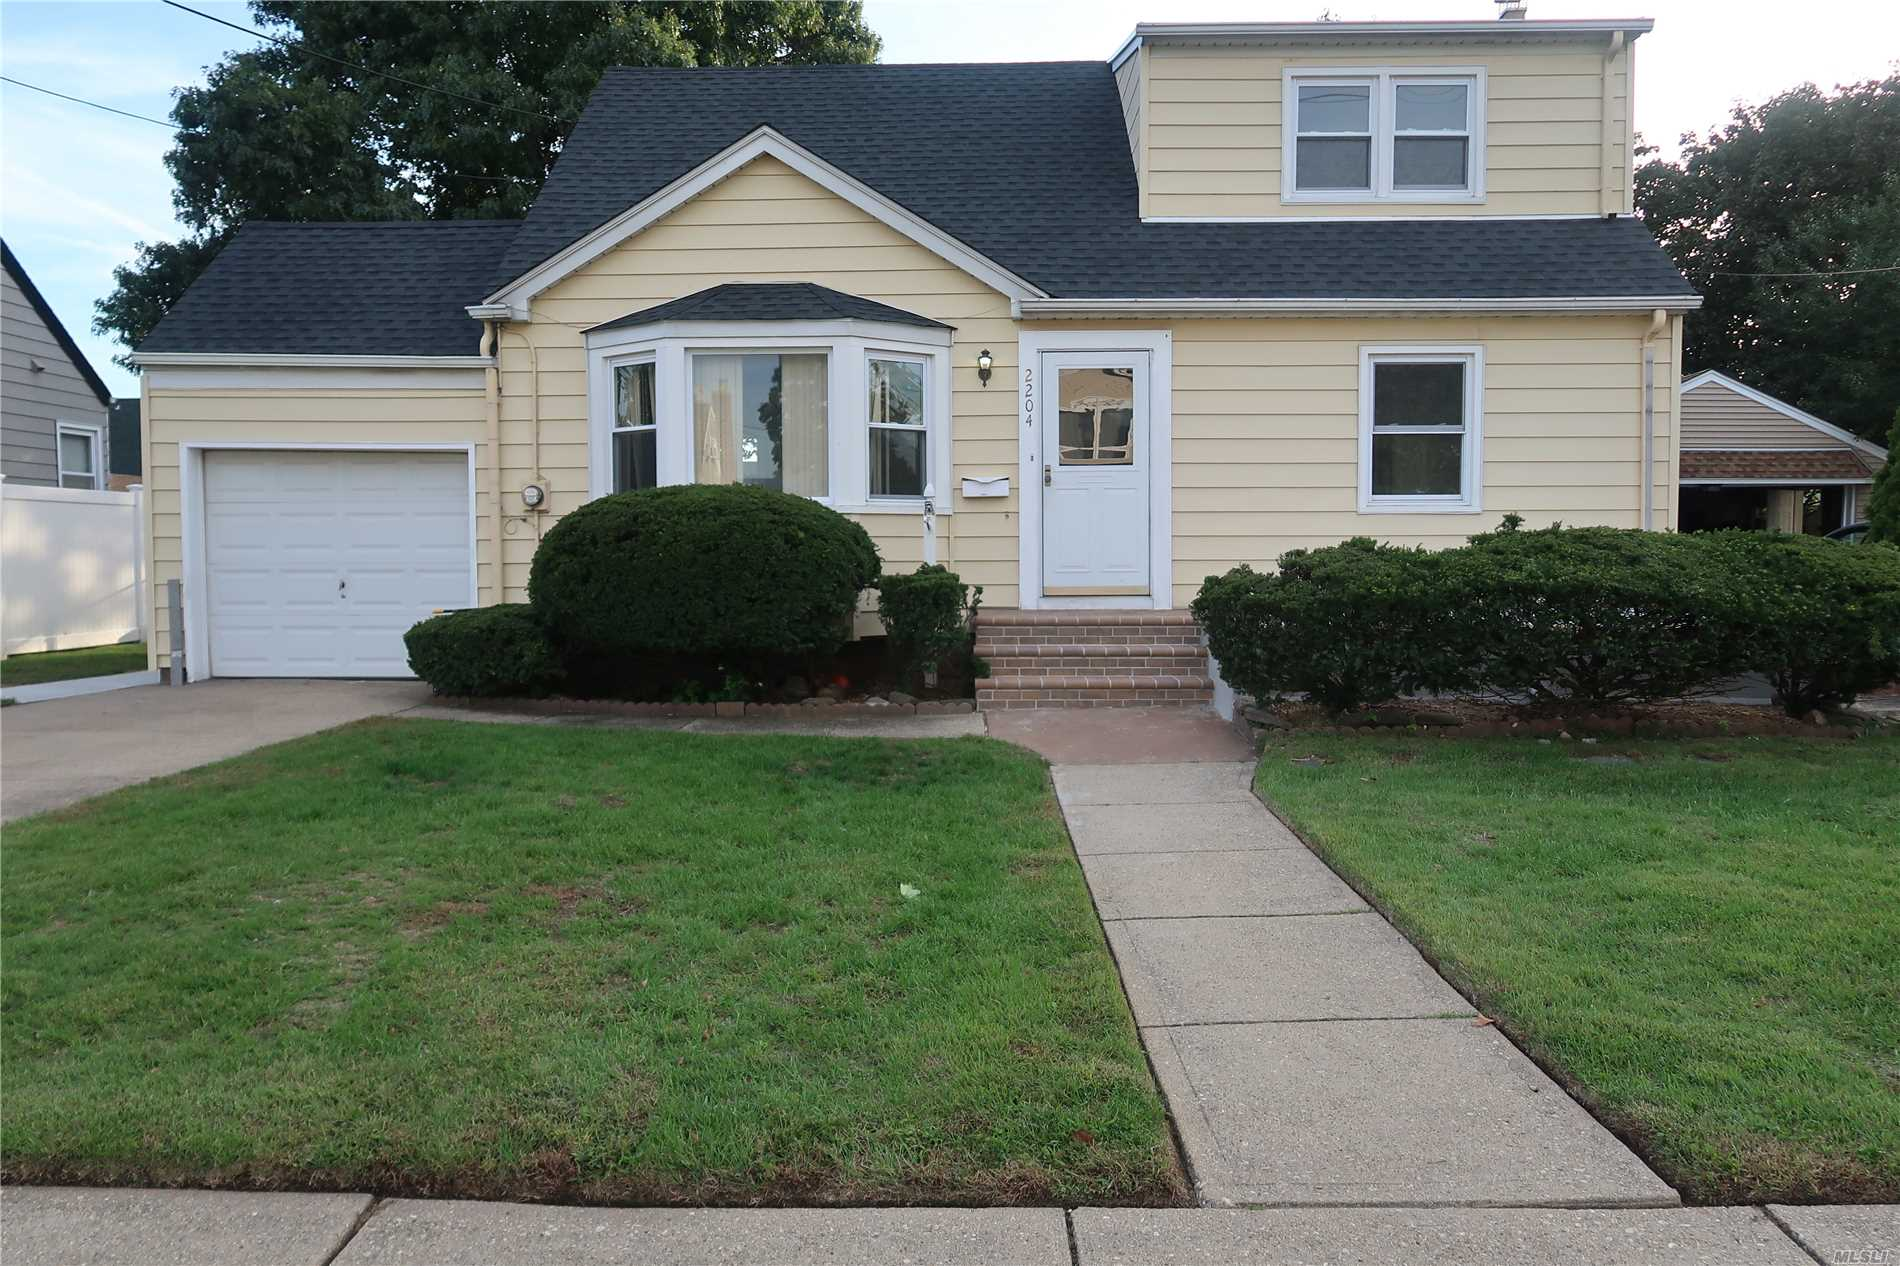 2204 6th St - East Meadow, New York